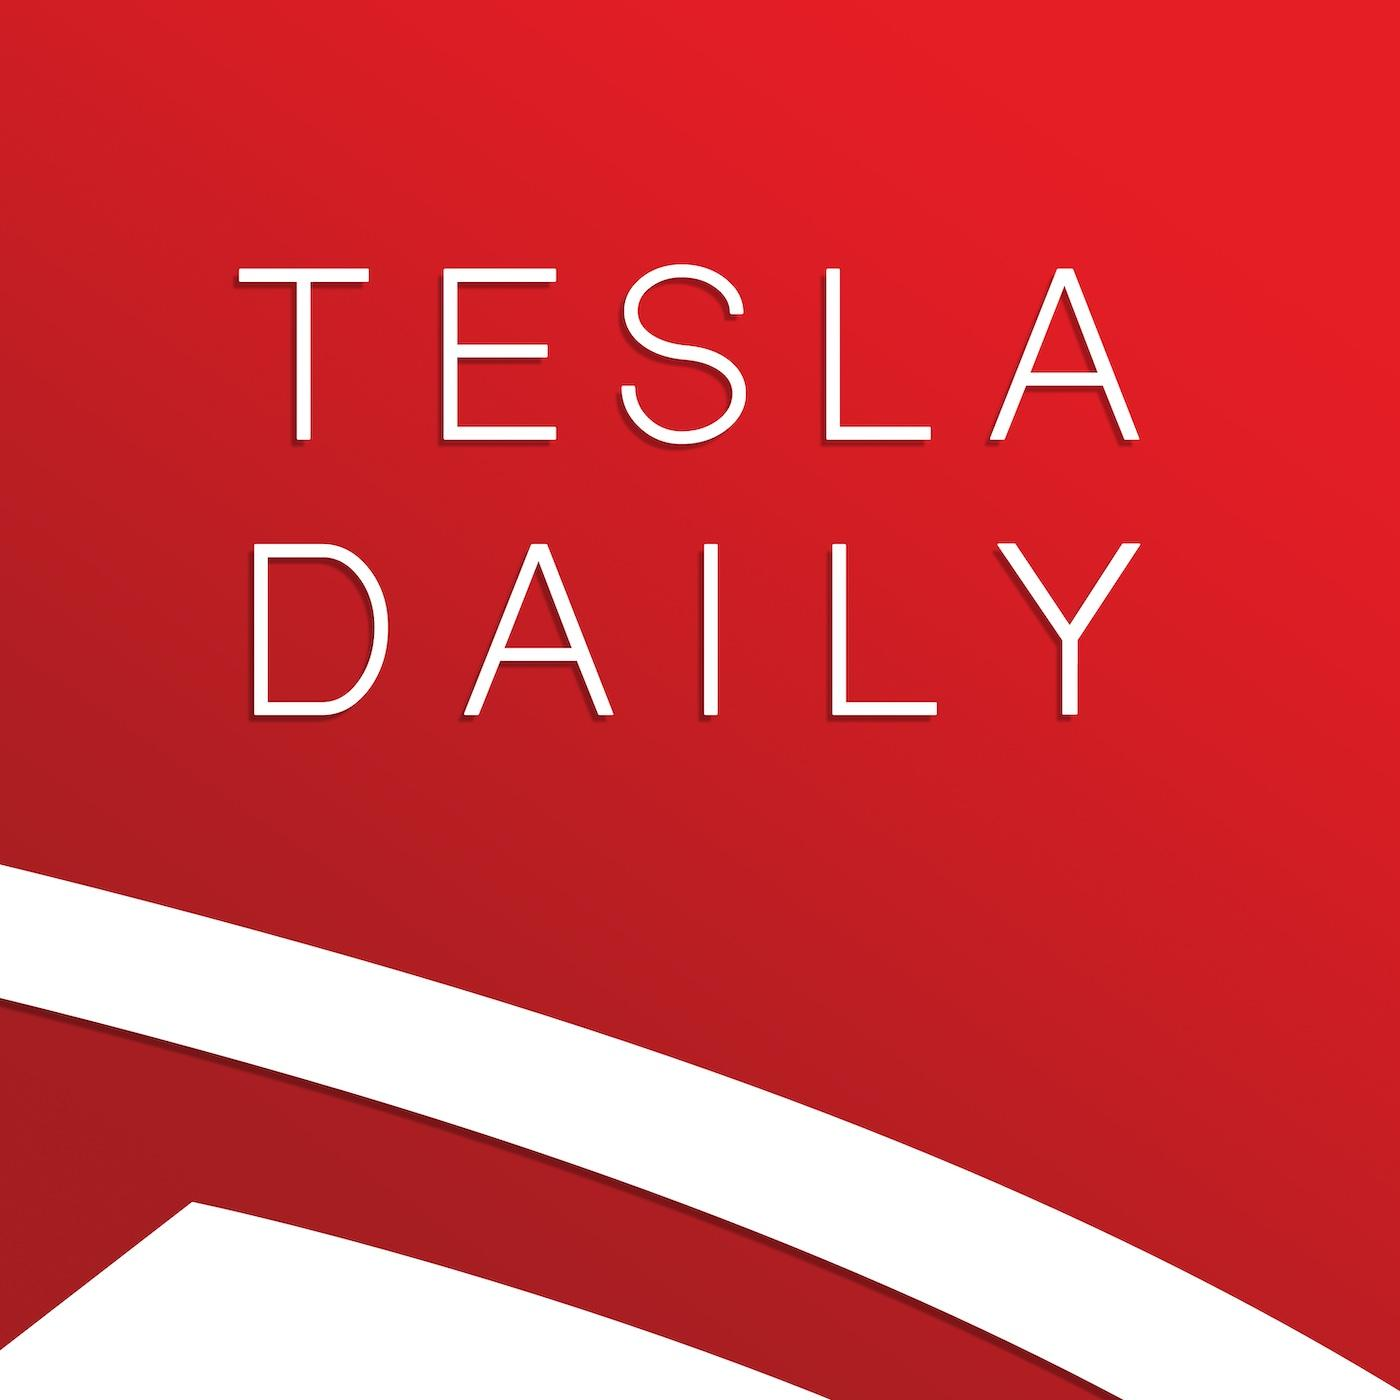 What Is Going on With the Model Y? And TSLA Stock? (02.22.21)